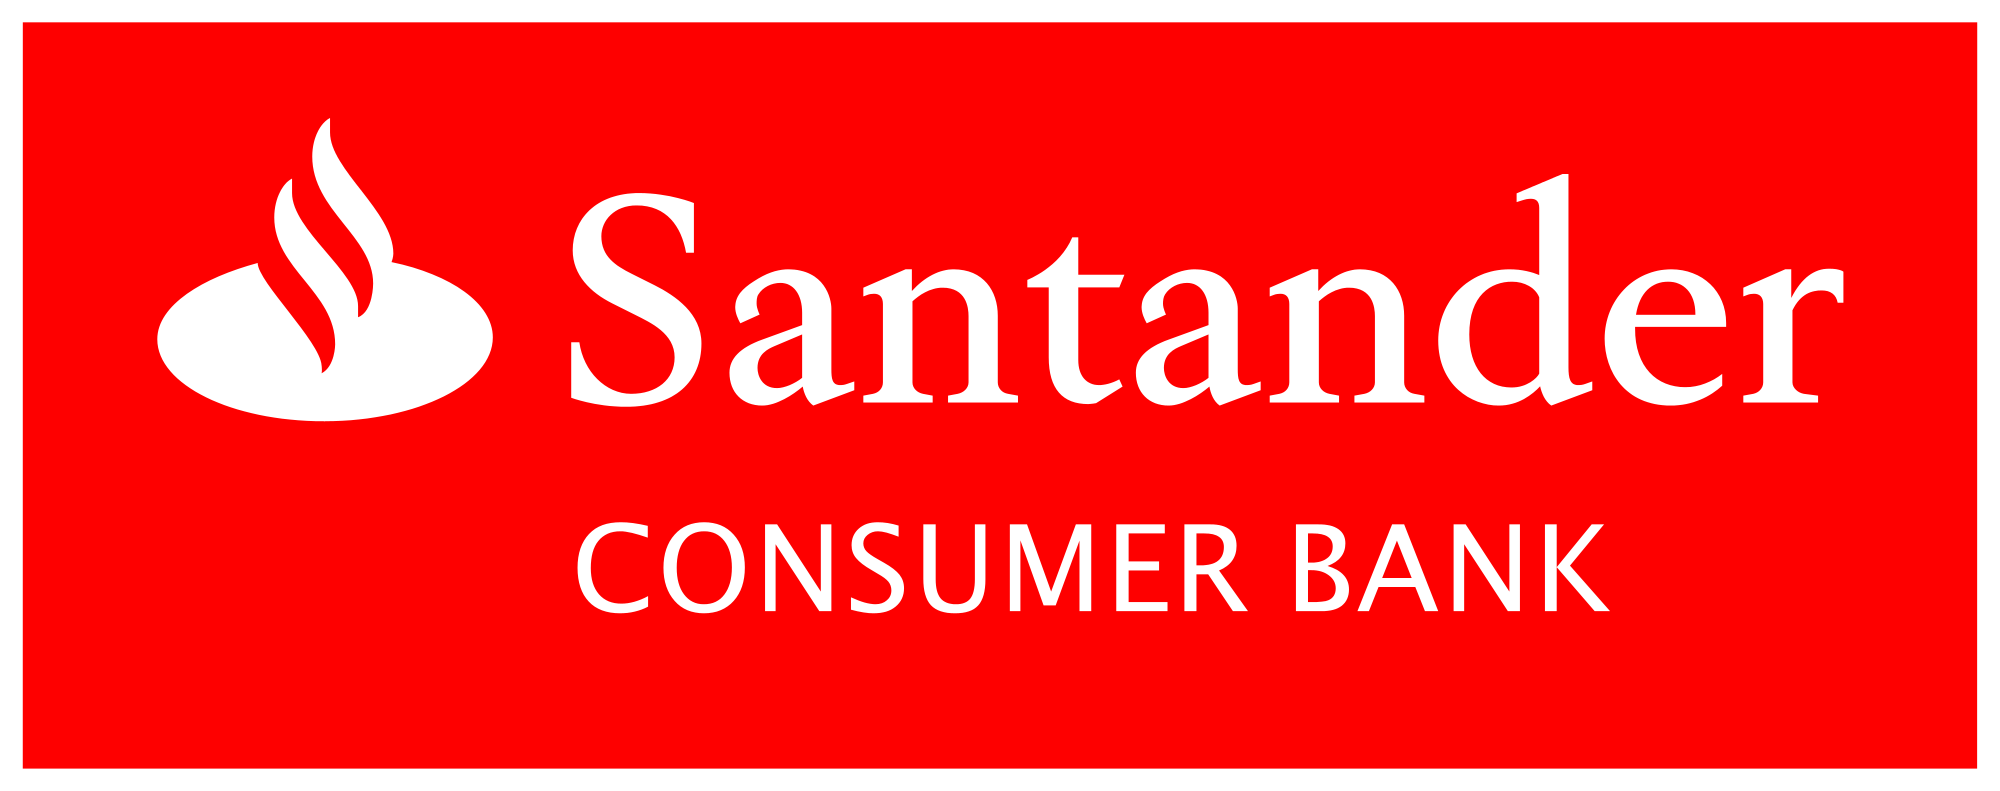 Santander | Brands of the World™ | Download vector logos and logotypes